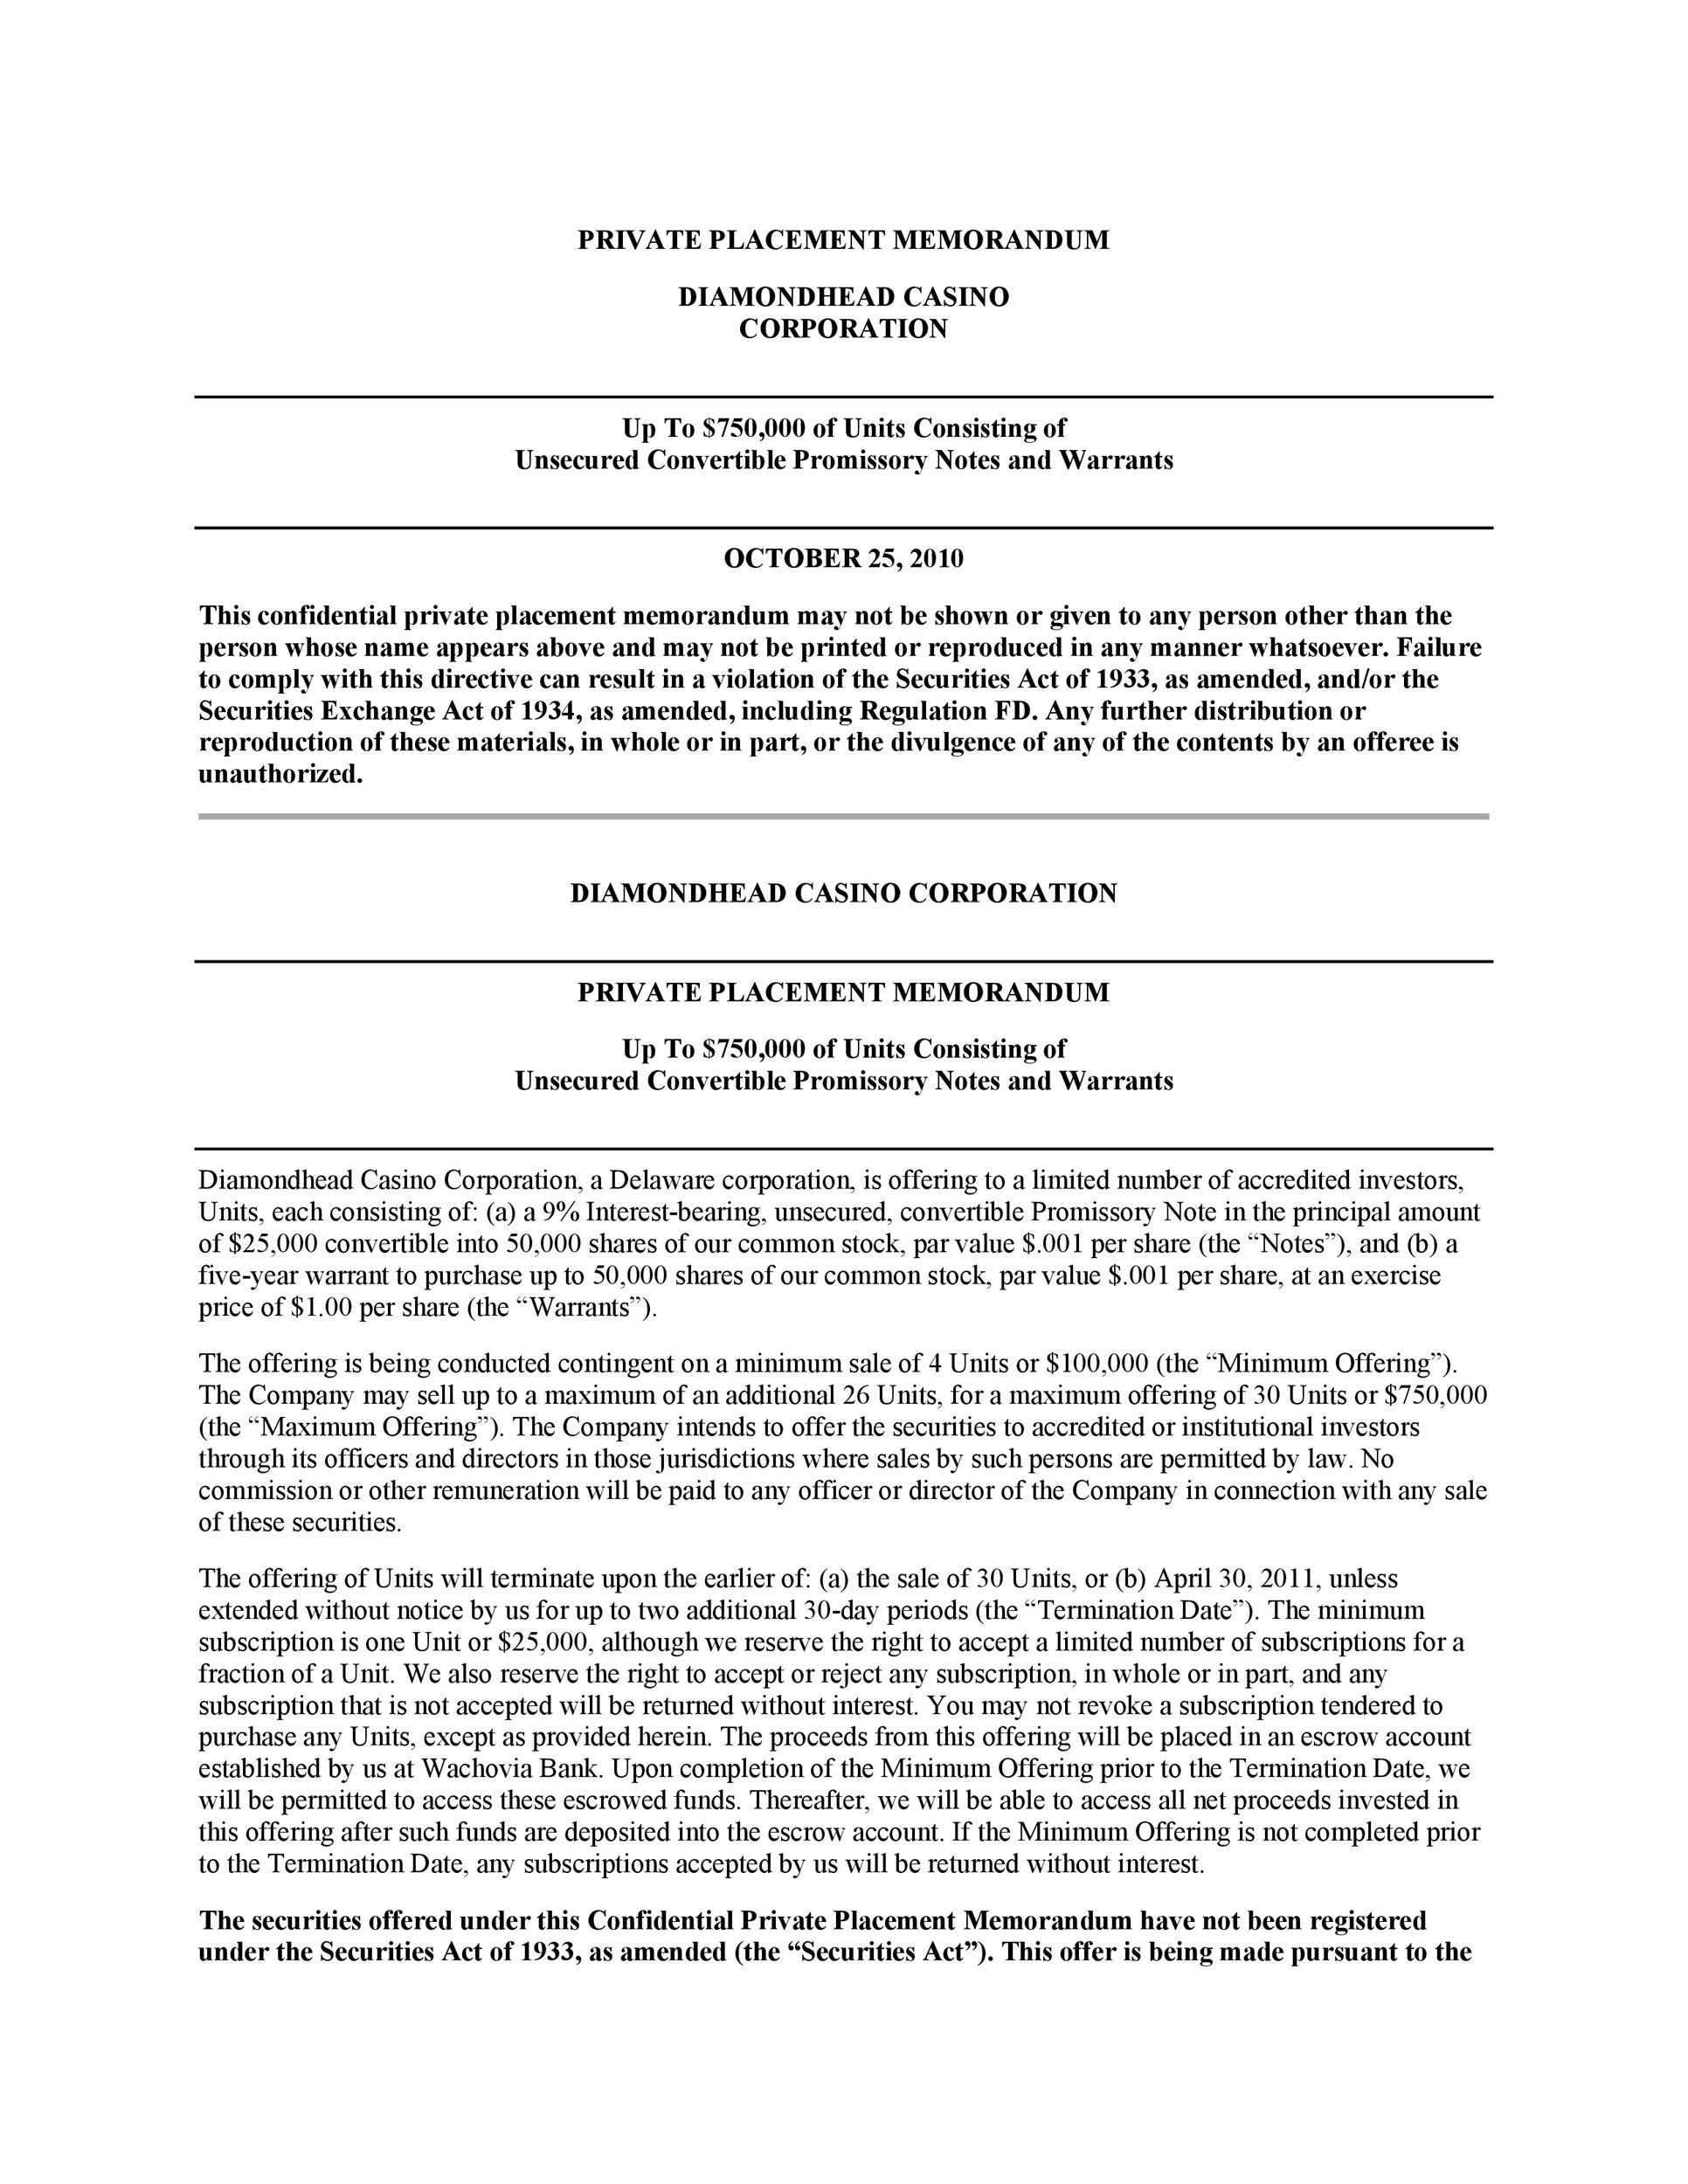 Sample Private Placement Memorandum | 40 Private Placement Memorandum Templates Word Pdf